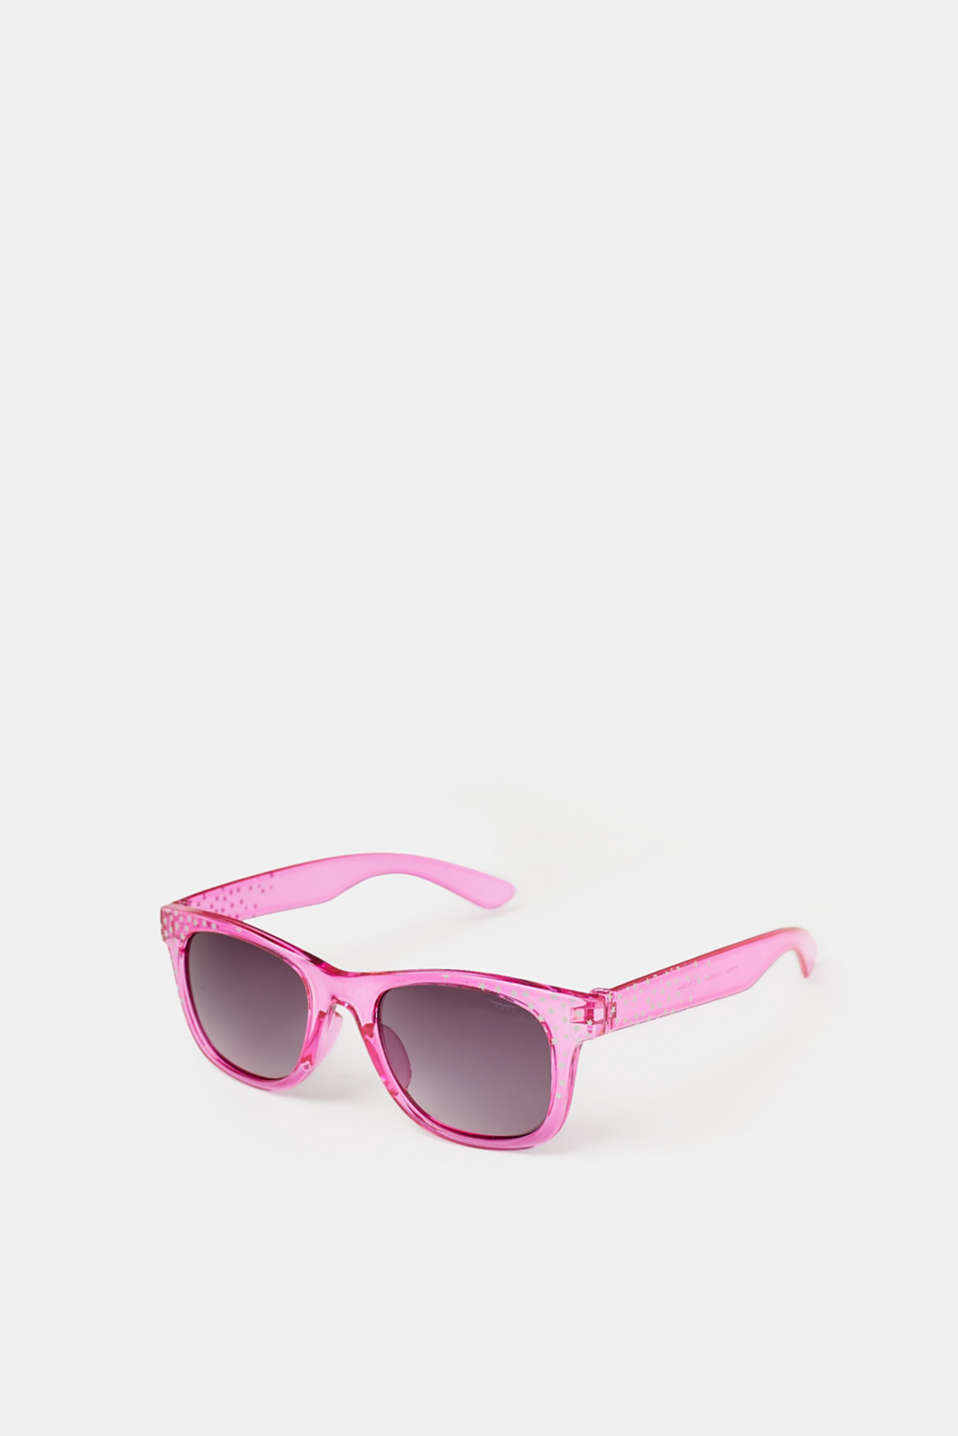 For cool kids! These sunglasses are decorated with smart stripes for boys and glittering stars for girls.